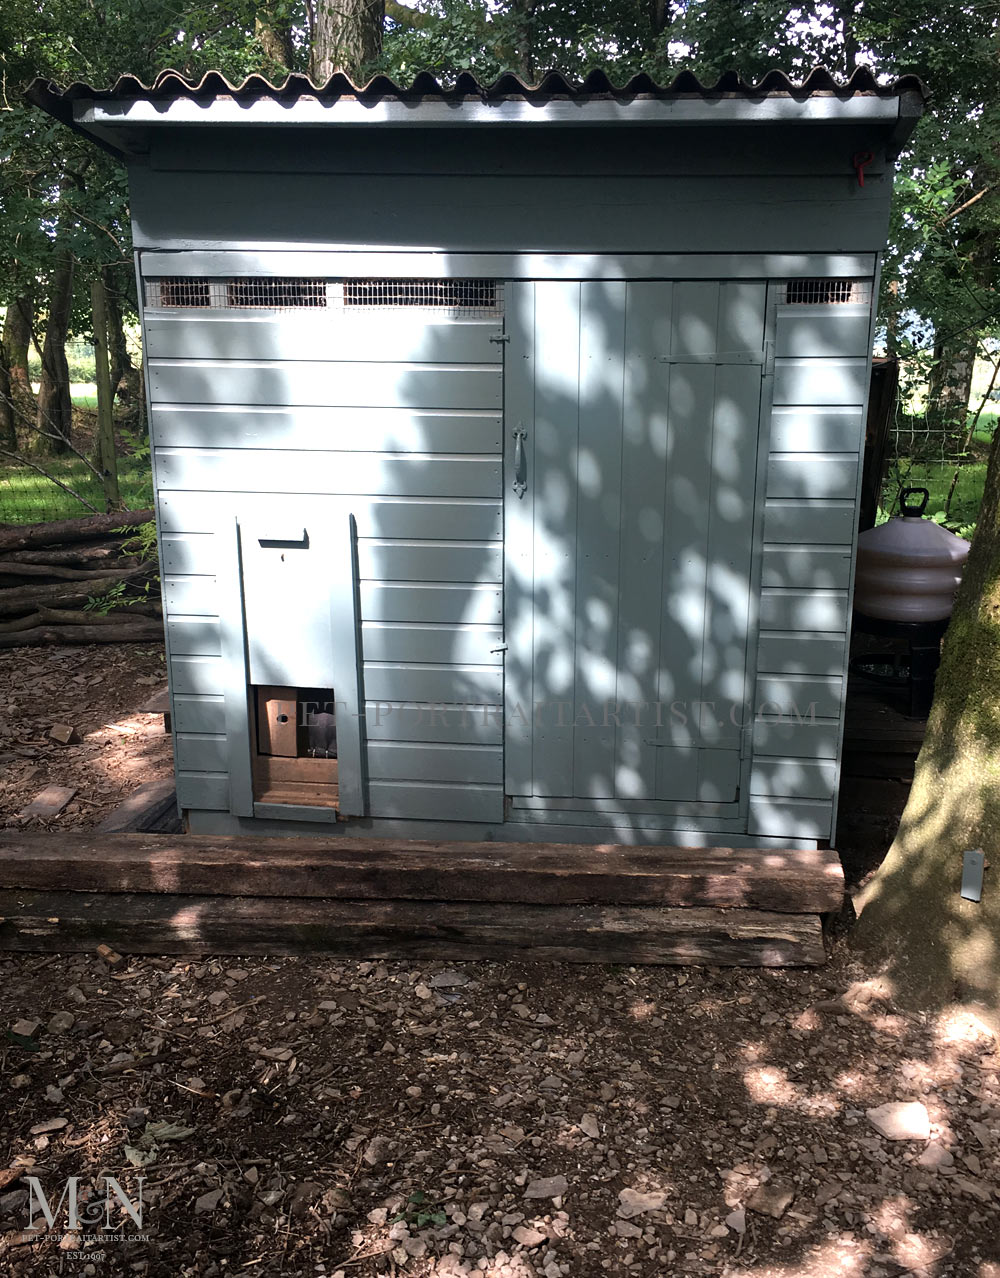 Extending the chicken shed